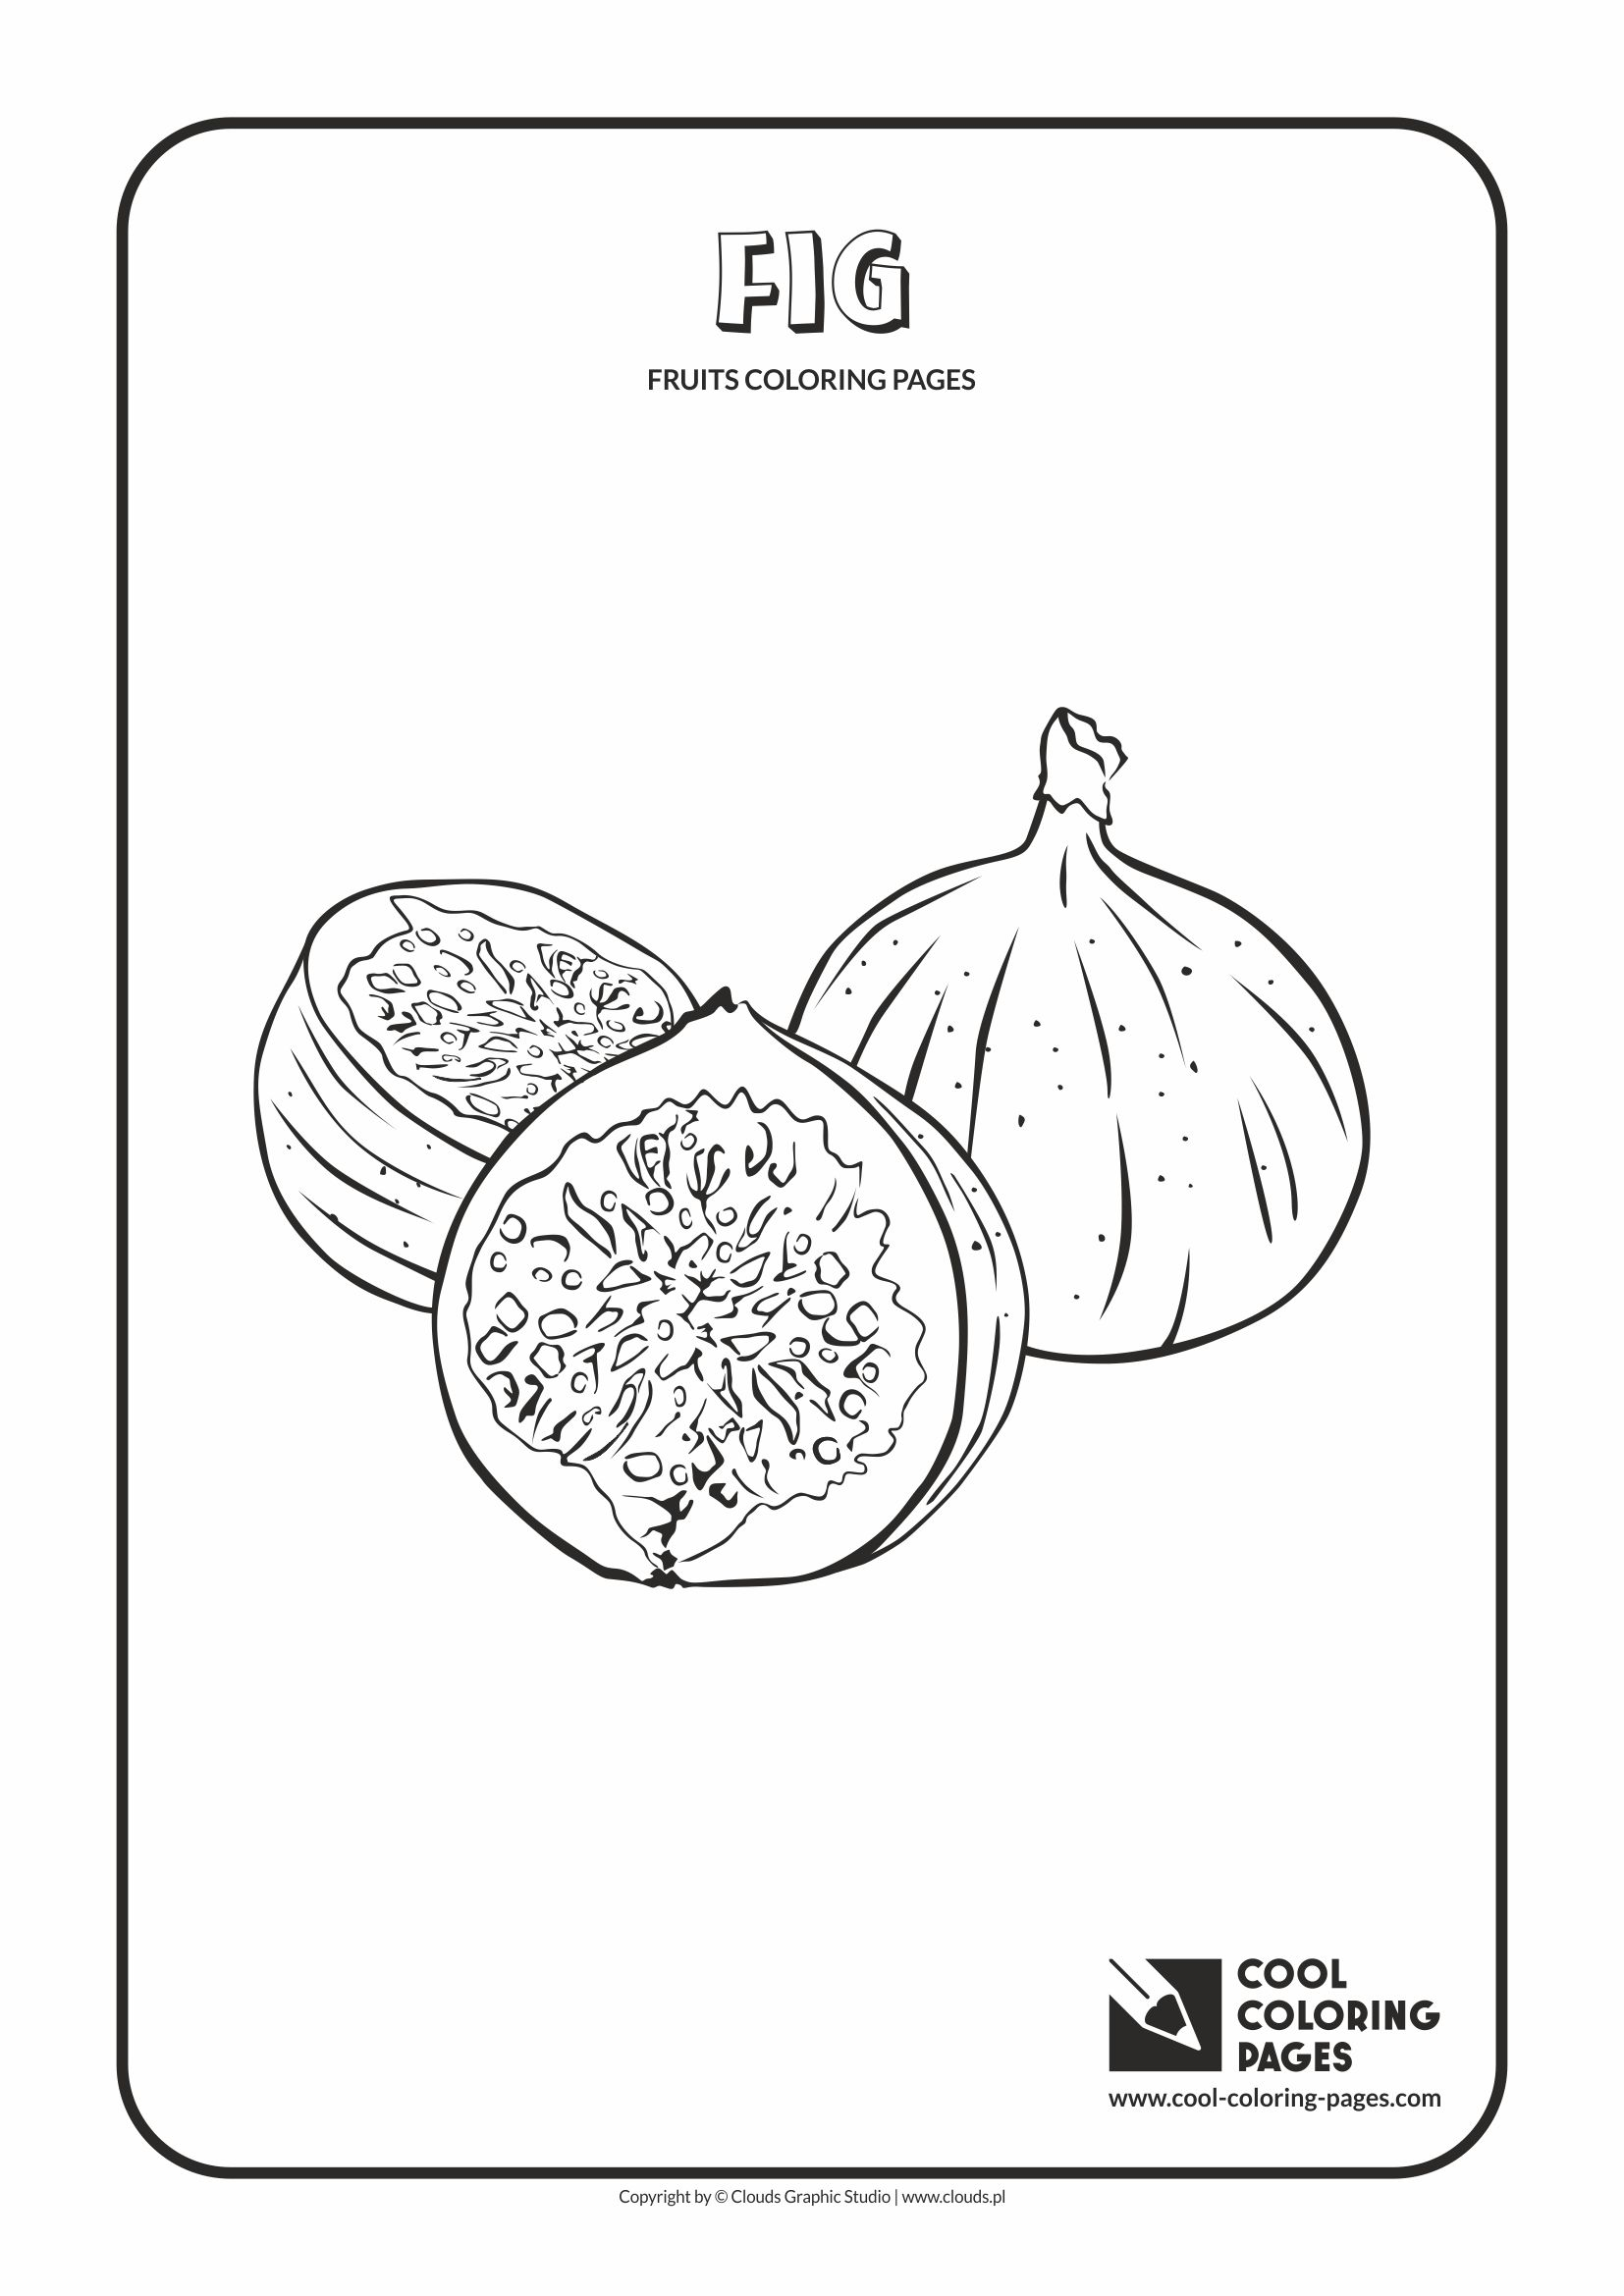 fig coloring page cool coloring pages